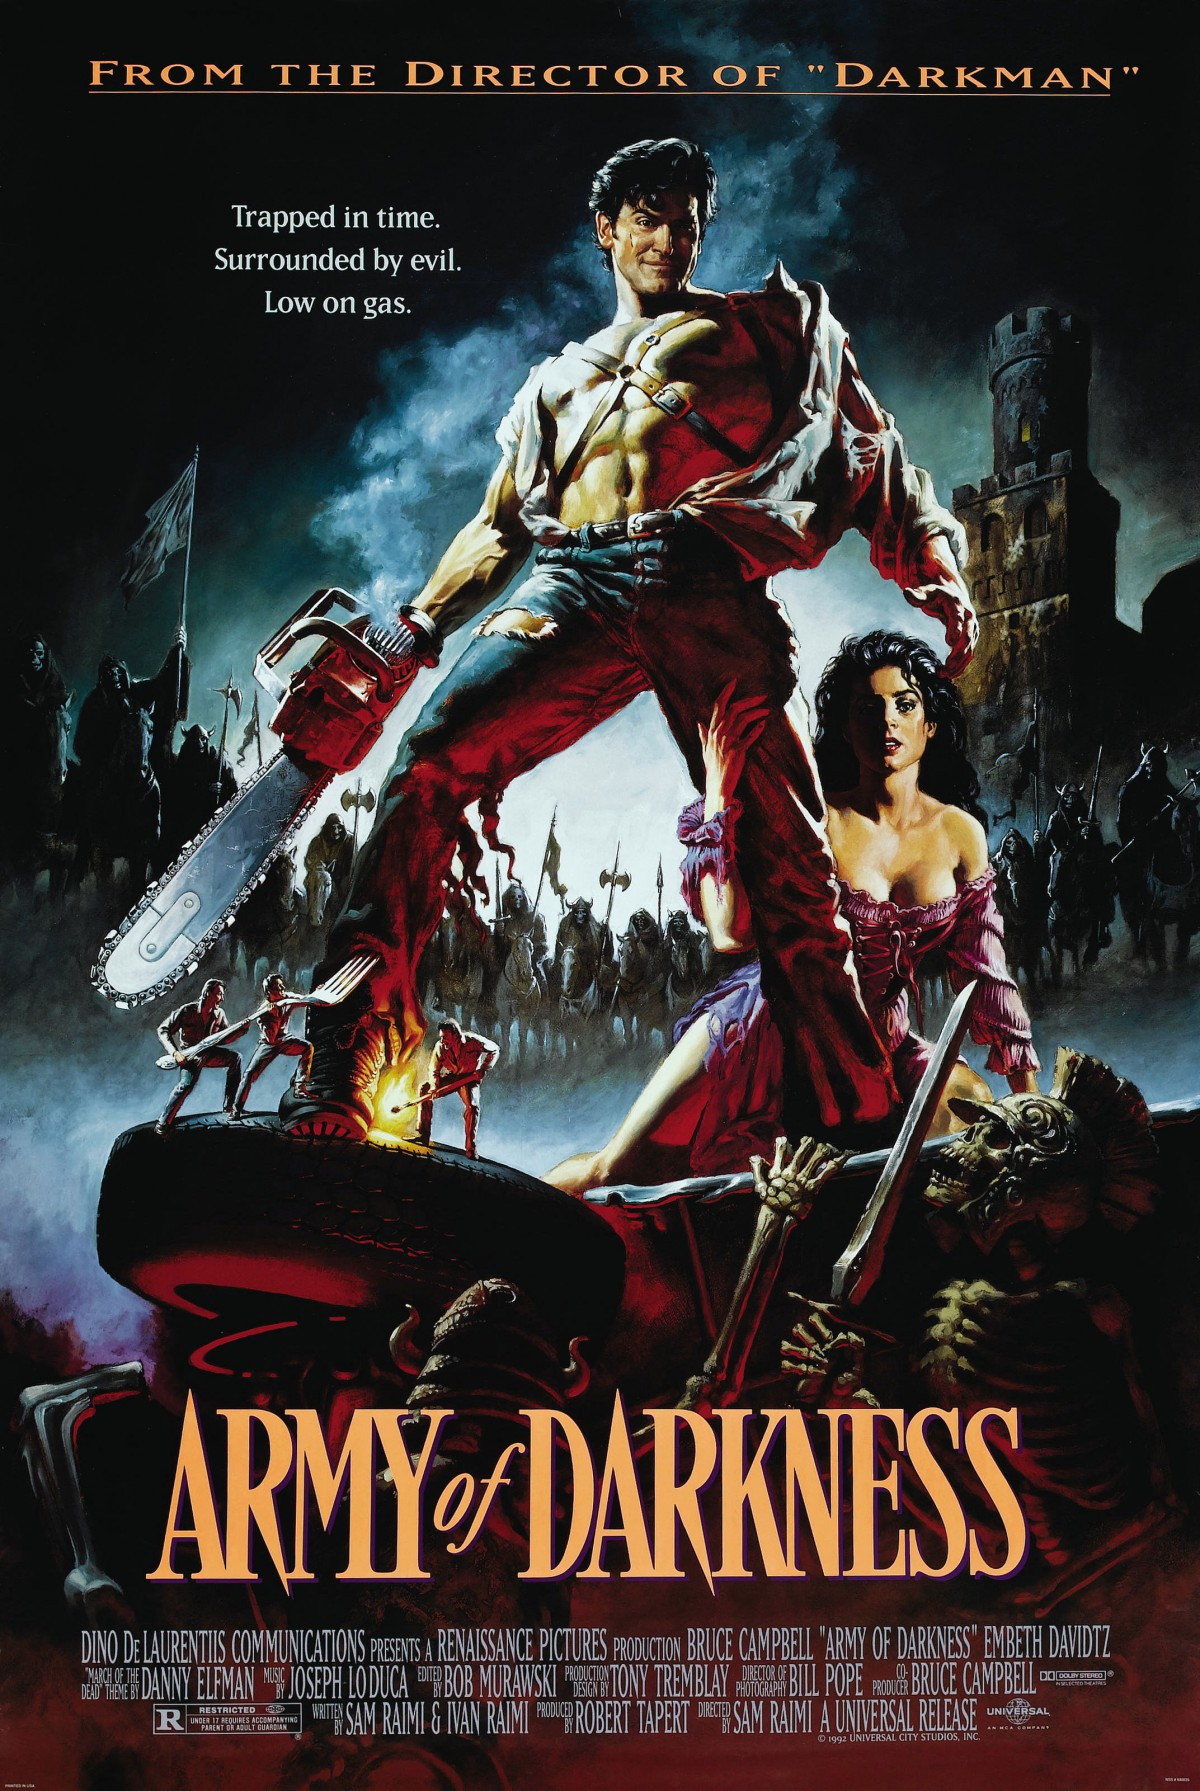 79. Army of Darkness (1992)